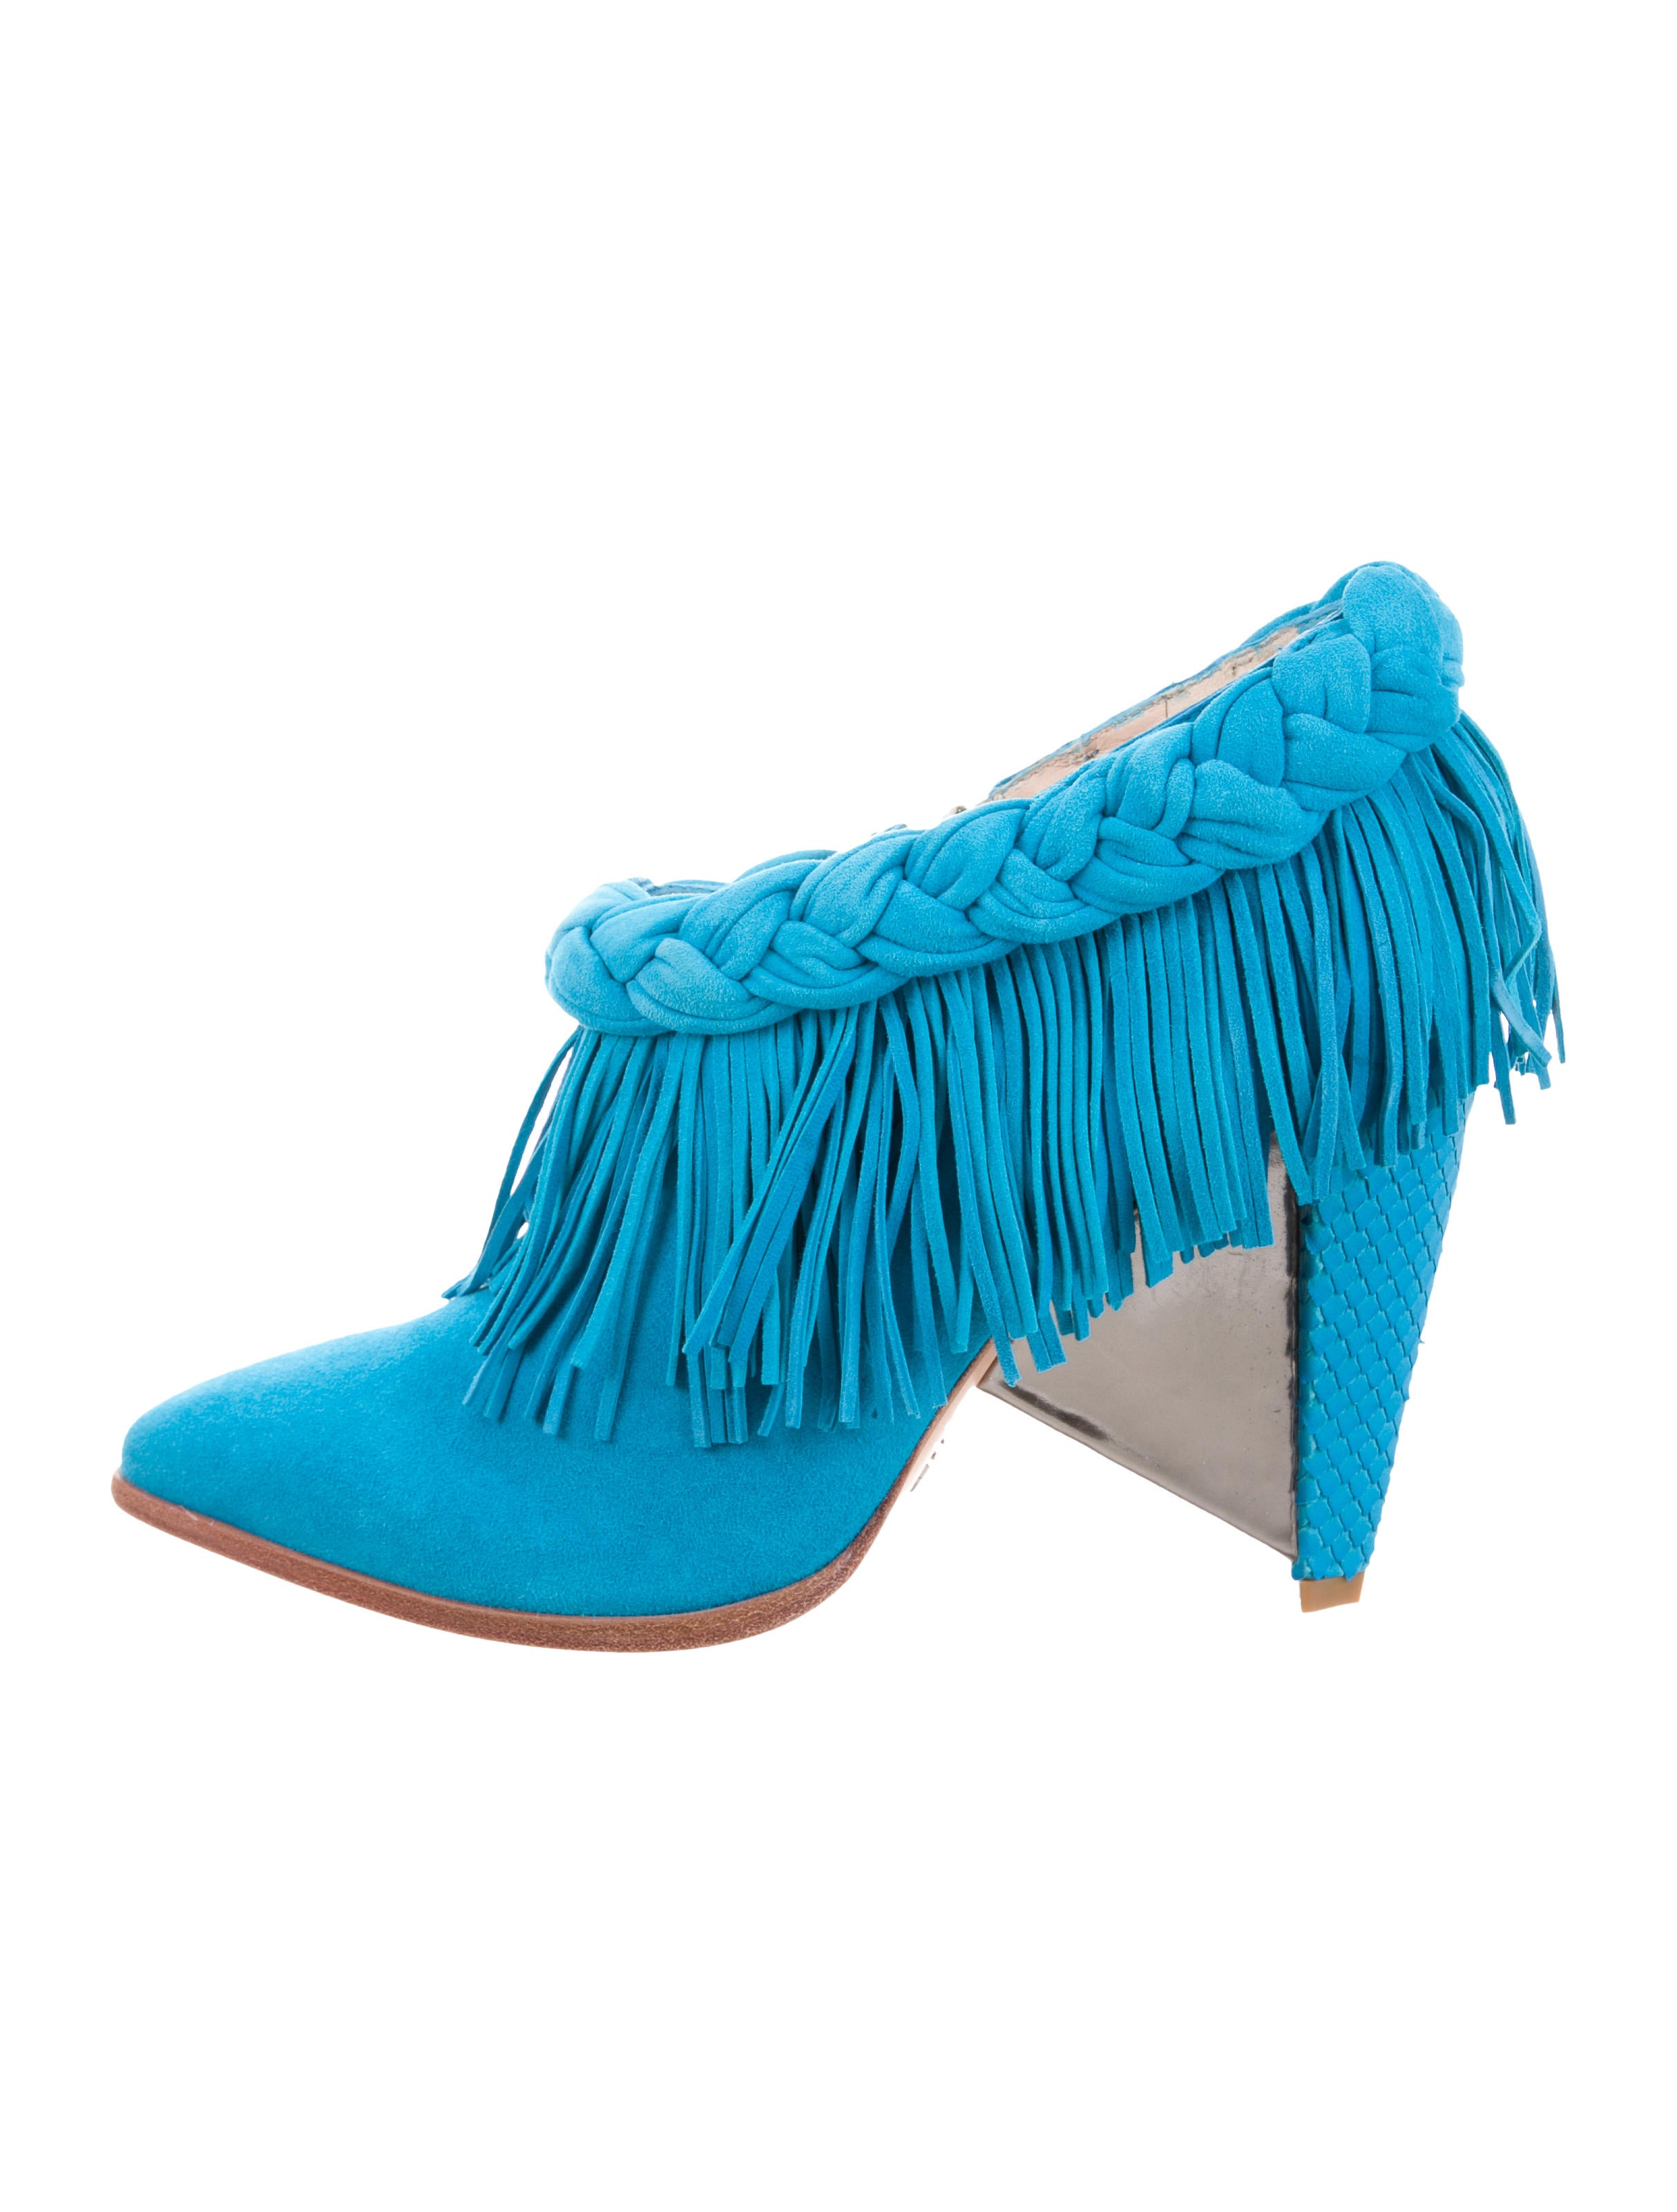 outlet ebay Femmes Sans Peur Astra Fringe Booties w/ Tags websites cheap price from china footlocker finishline cheap online RChu4QzG6j